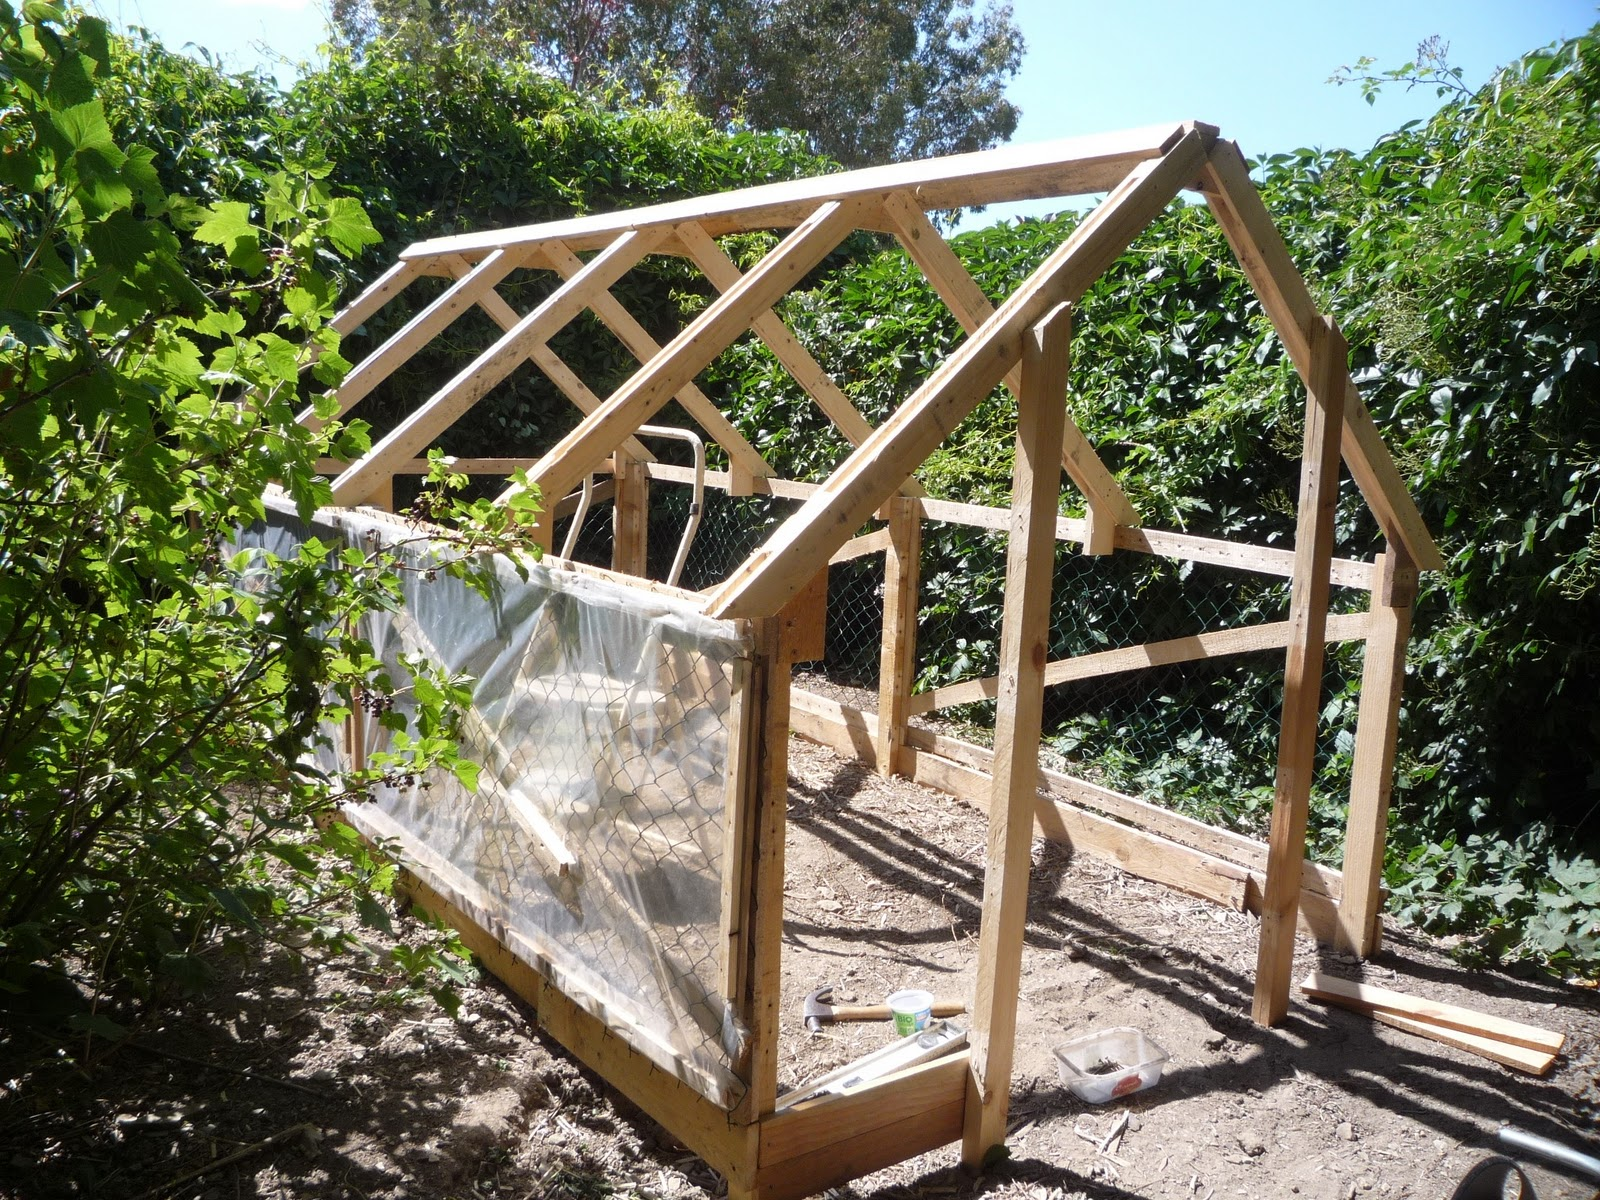 Where how to collect pallets identifying untreated wood safety and good housekeeping - How to build a wooden greenhouse ...